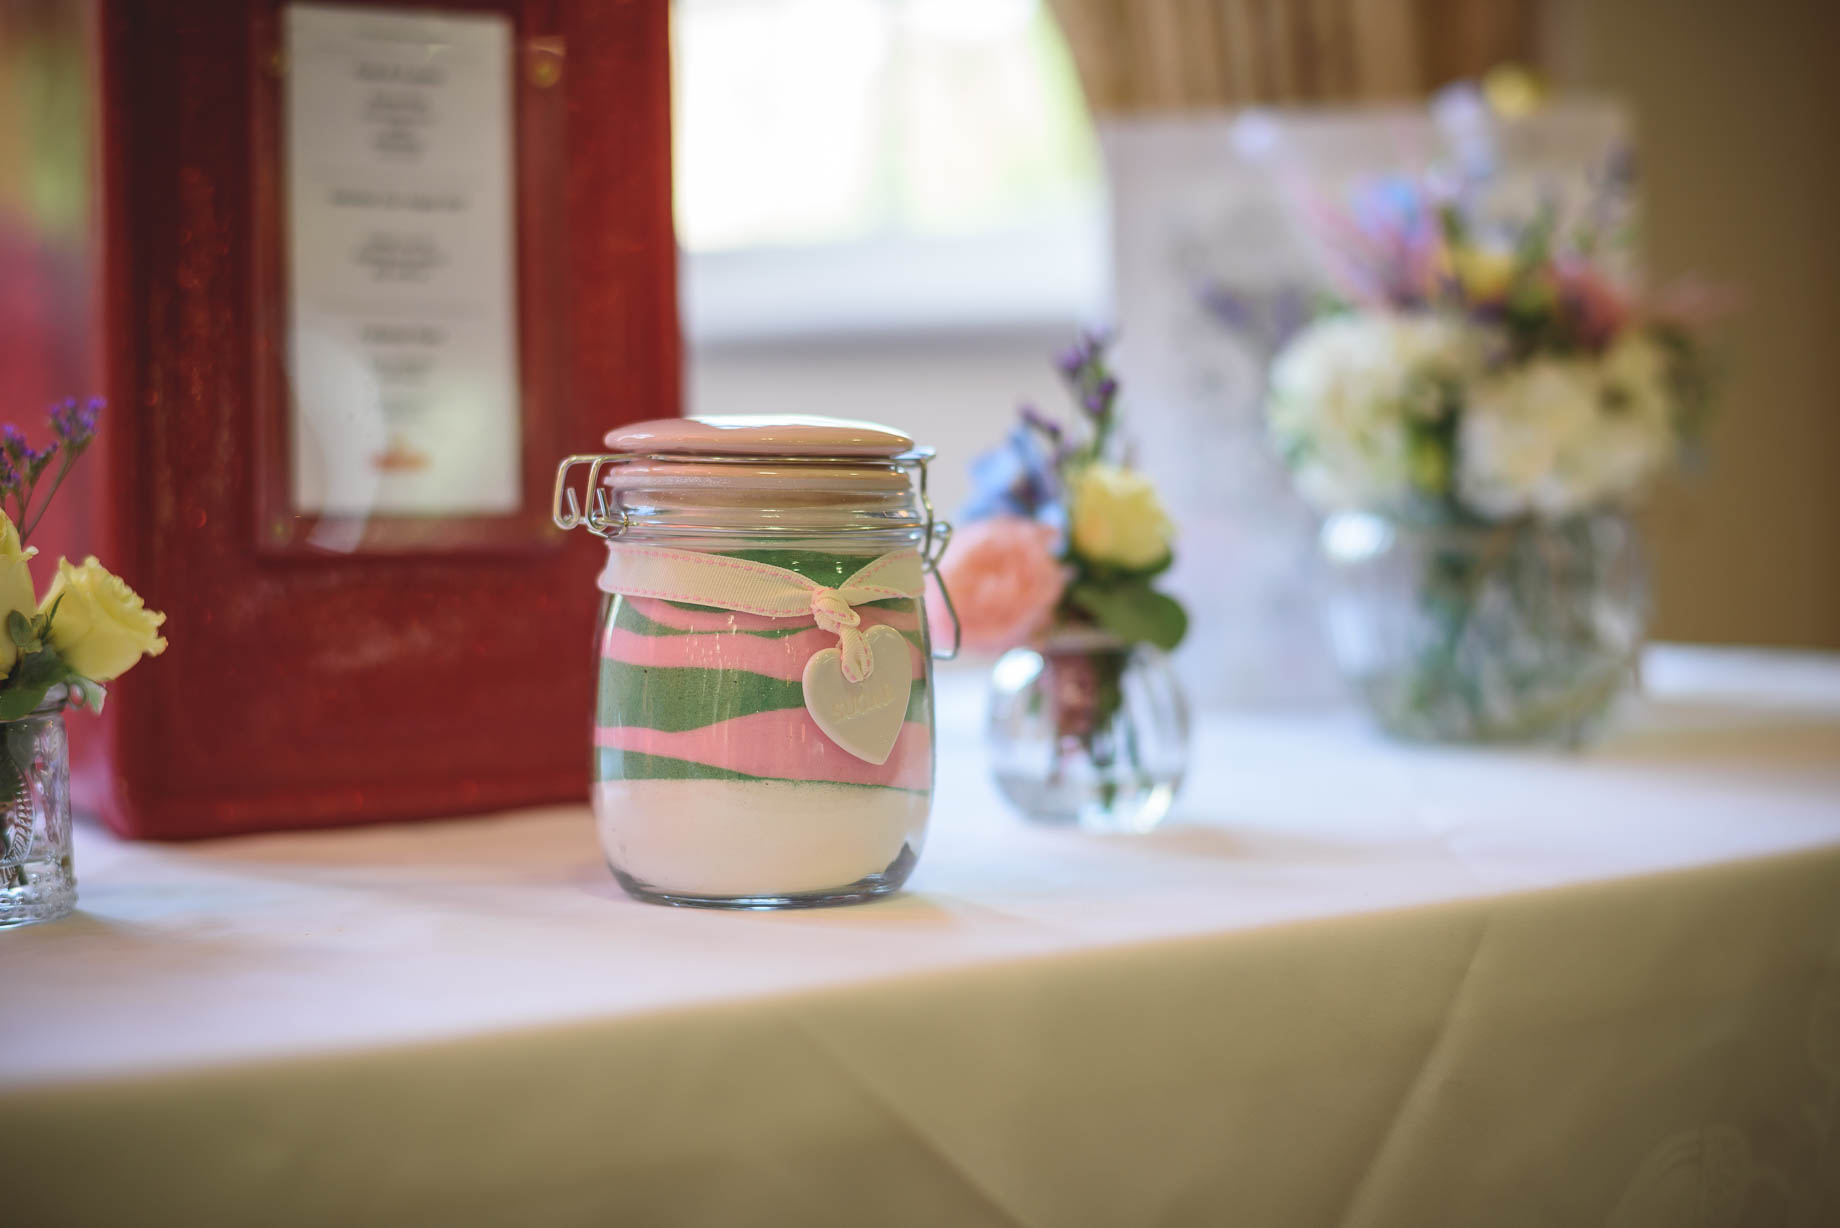 Luton Hoo wedding photography by Guy Collier Photography - Lauren and Gem (90 of 178)